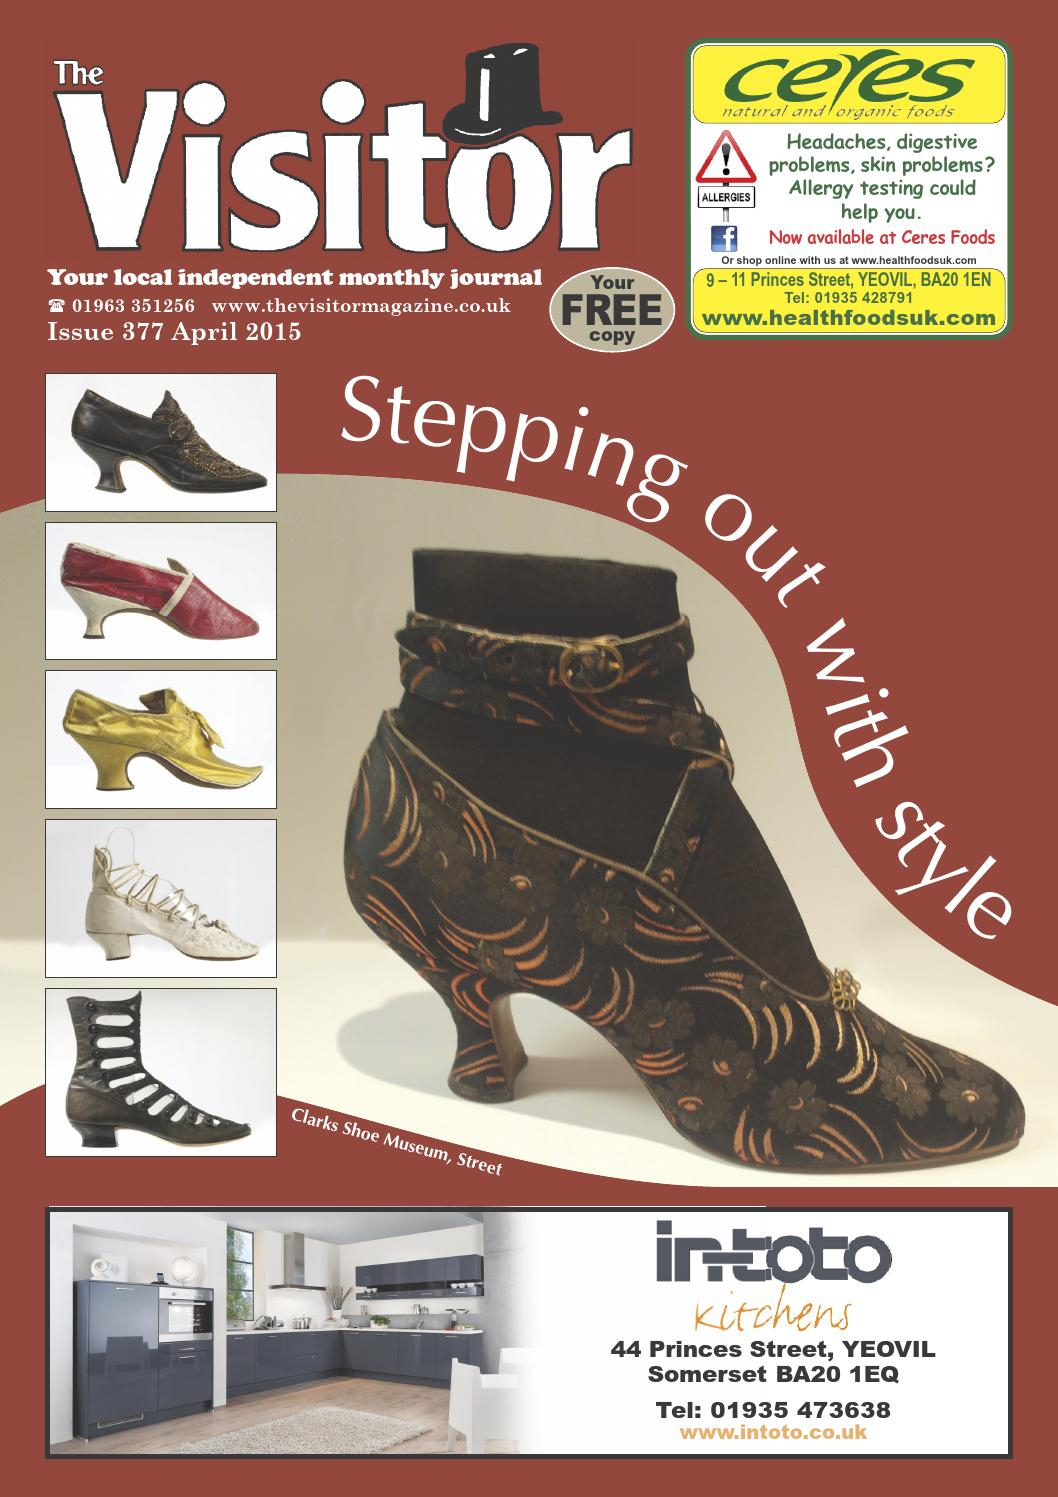 The Visitor Magazine Issue 377 April 2015 by The Visitor Magazine - issuu